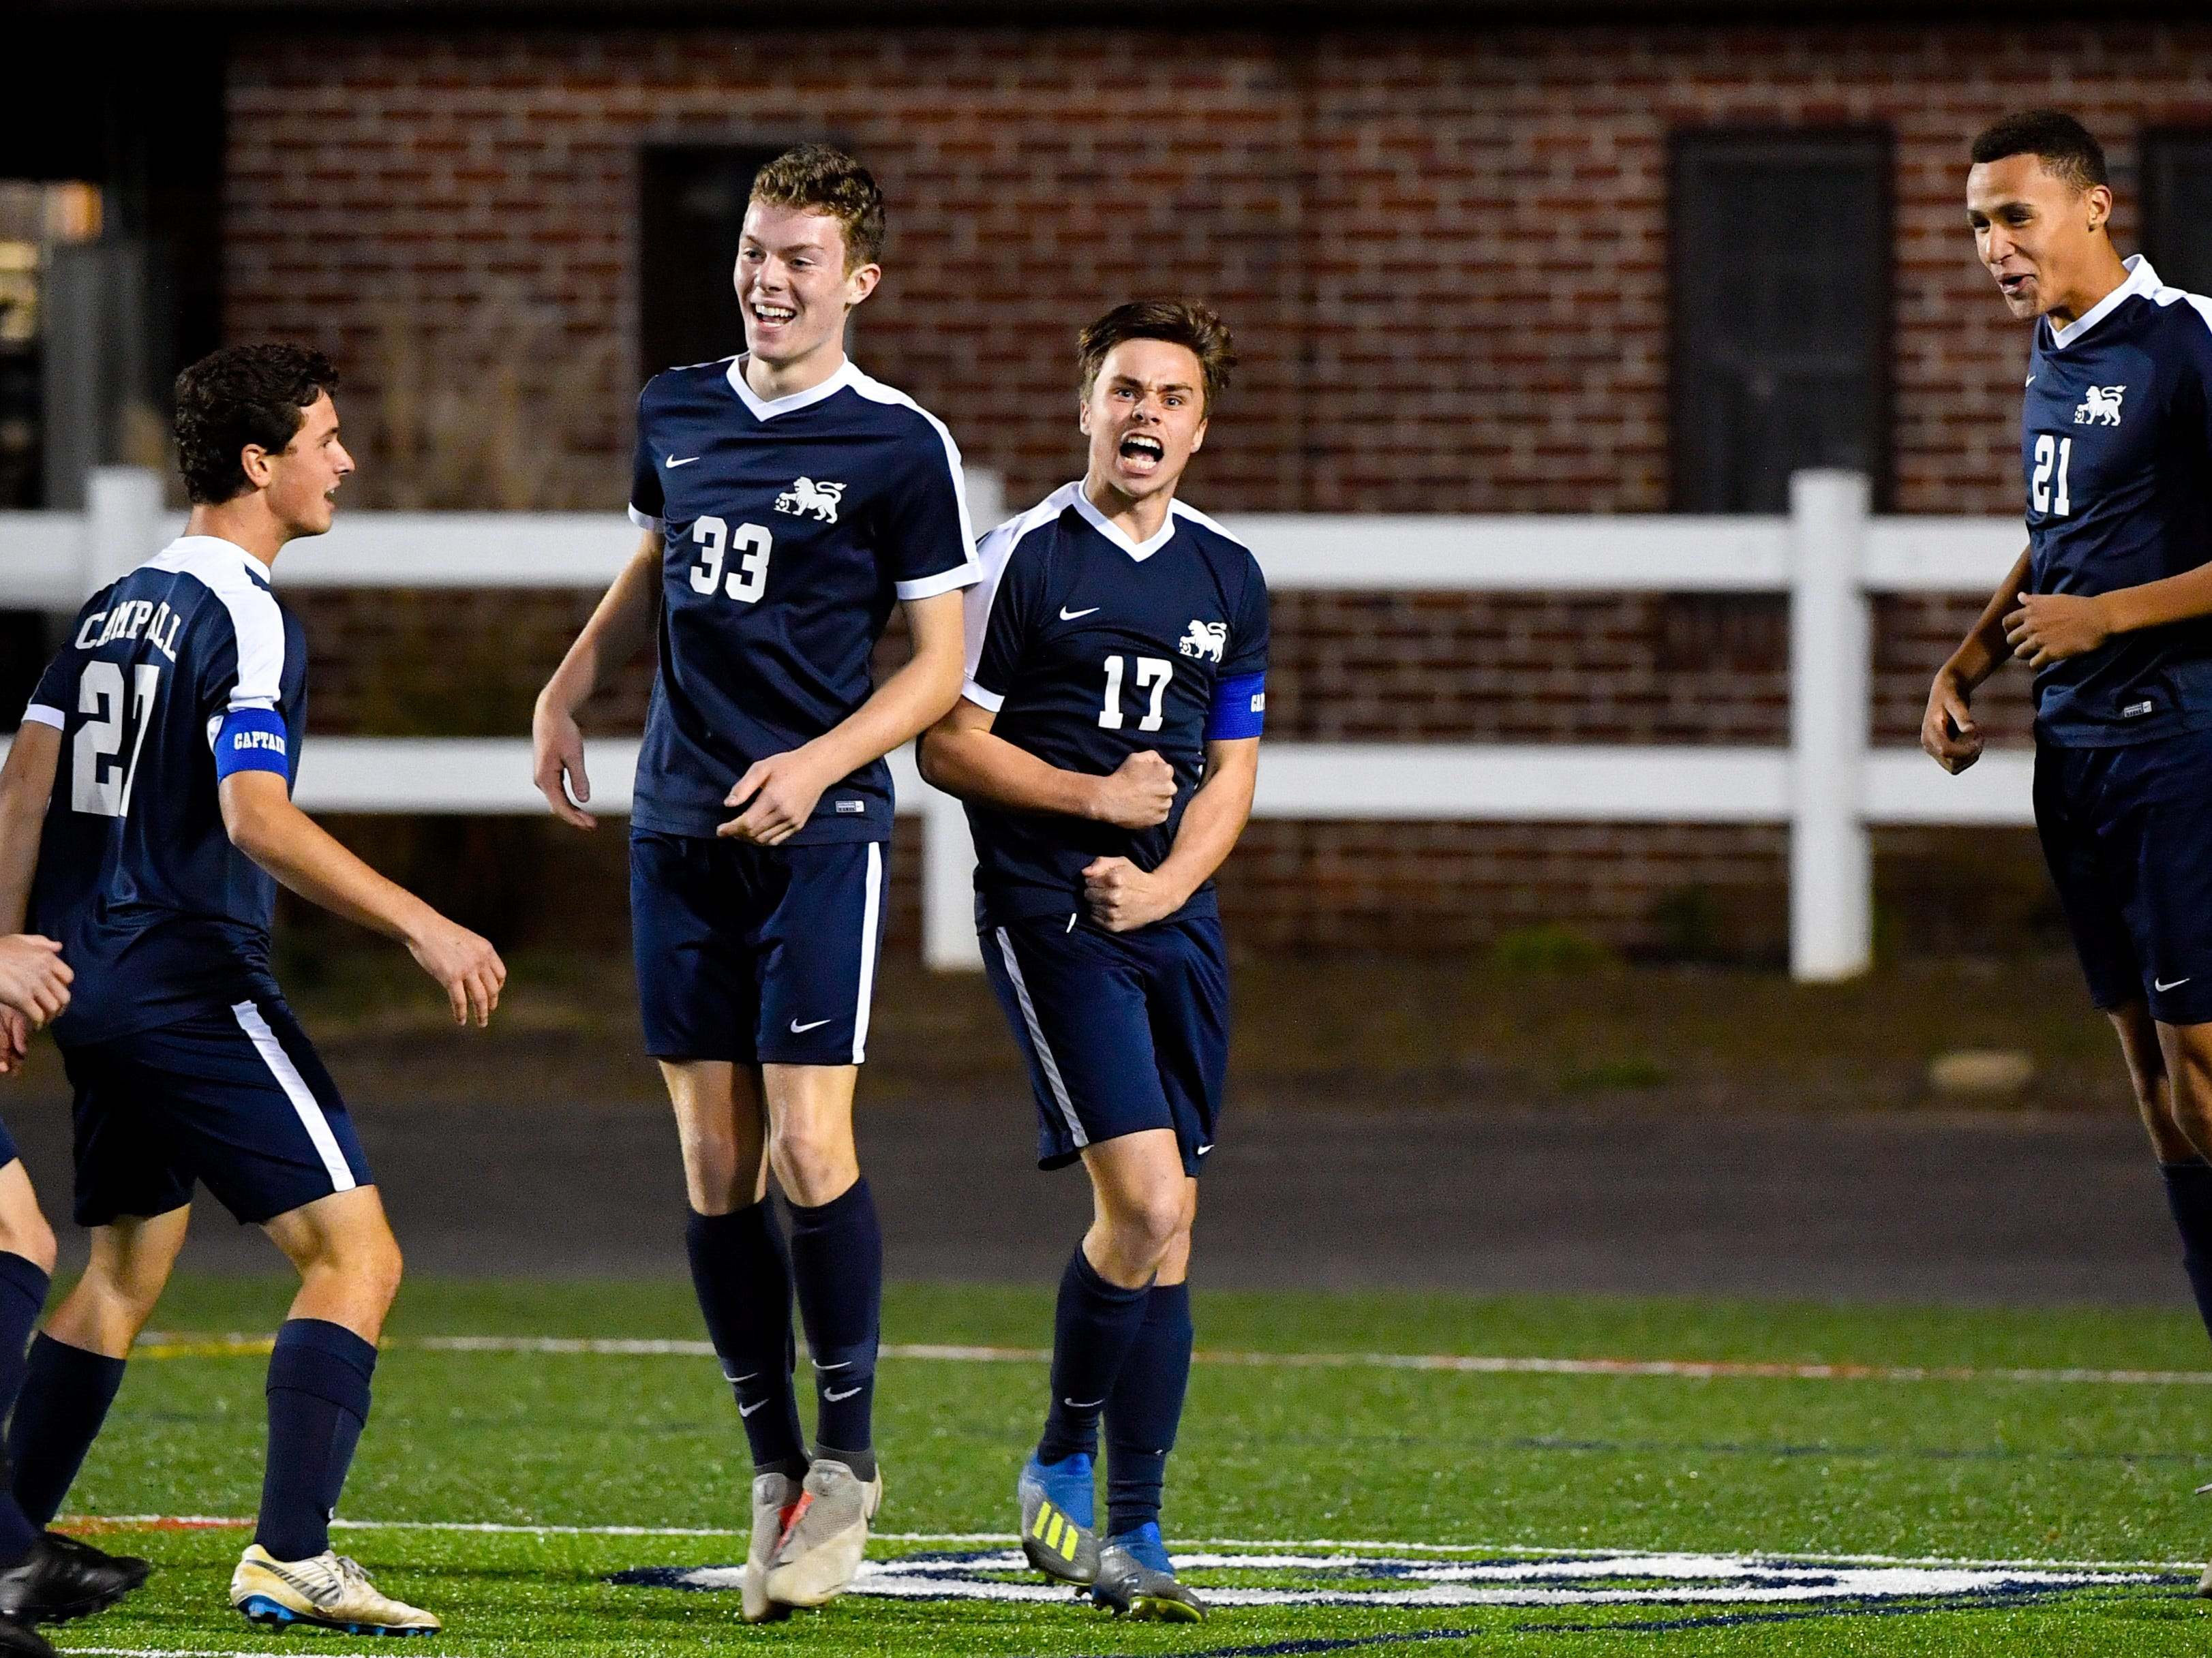 Camp Hill scores a goal early in the first half during the District 3 Class 1A boys' soccer finals between York Catholic and Camp Hill at Hersheypark Stadium, October 31, 2018. The Lions beat the Fighting Irish 2-0.